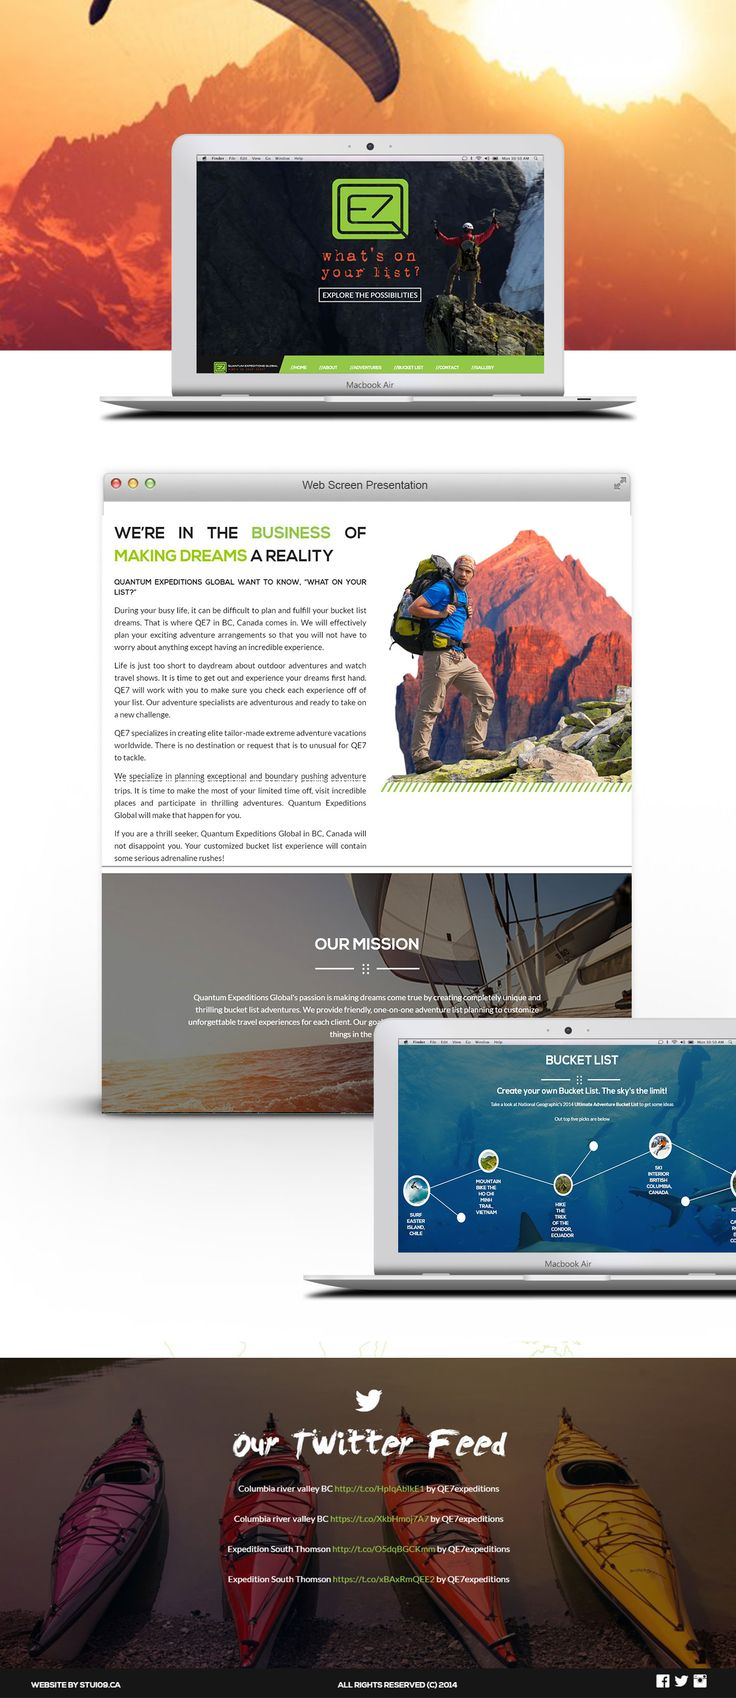 Adventure travel company website. Visit http://vrinmkansal.com to get your own website